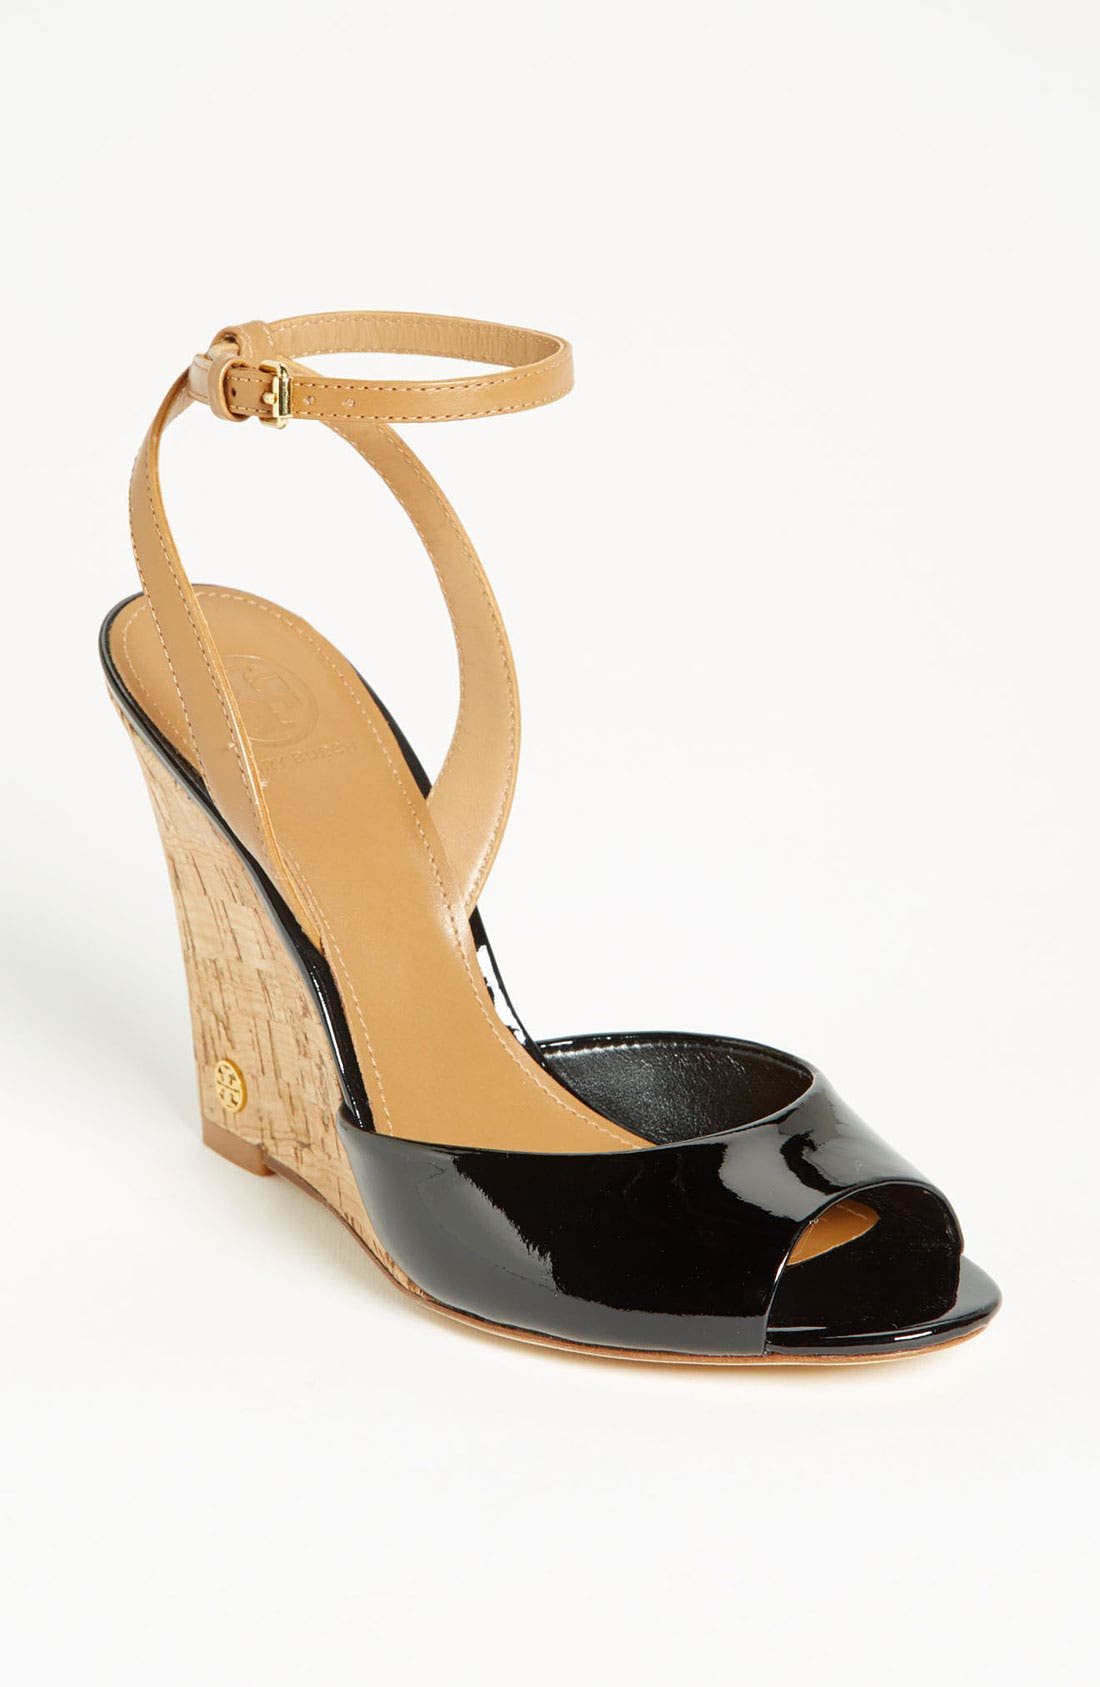 Alternate Image 1 Selected - Tory Burch 'Ashton' Sandal